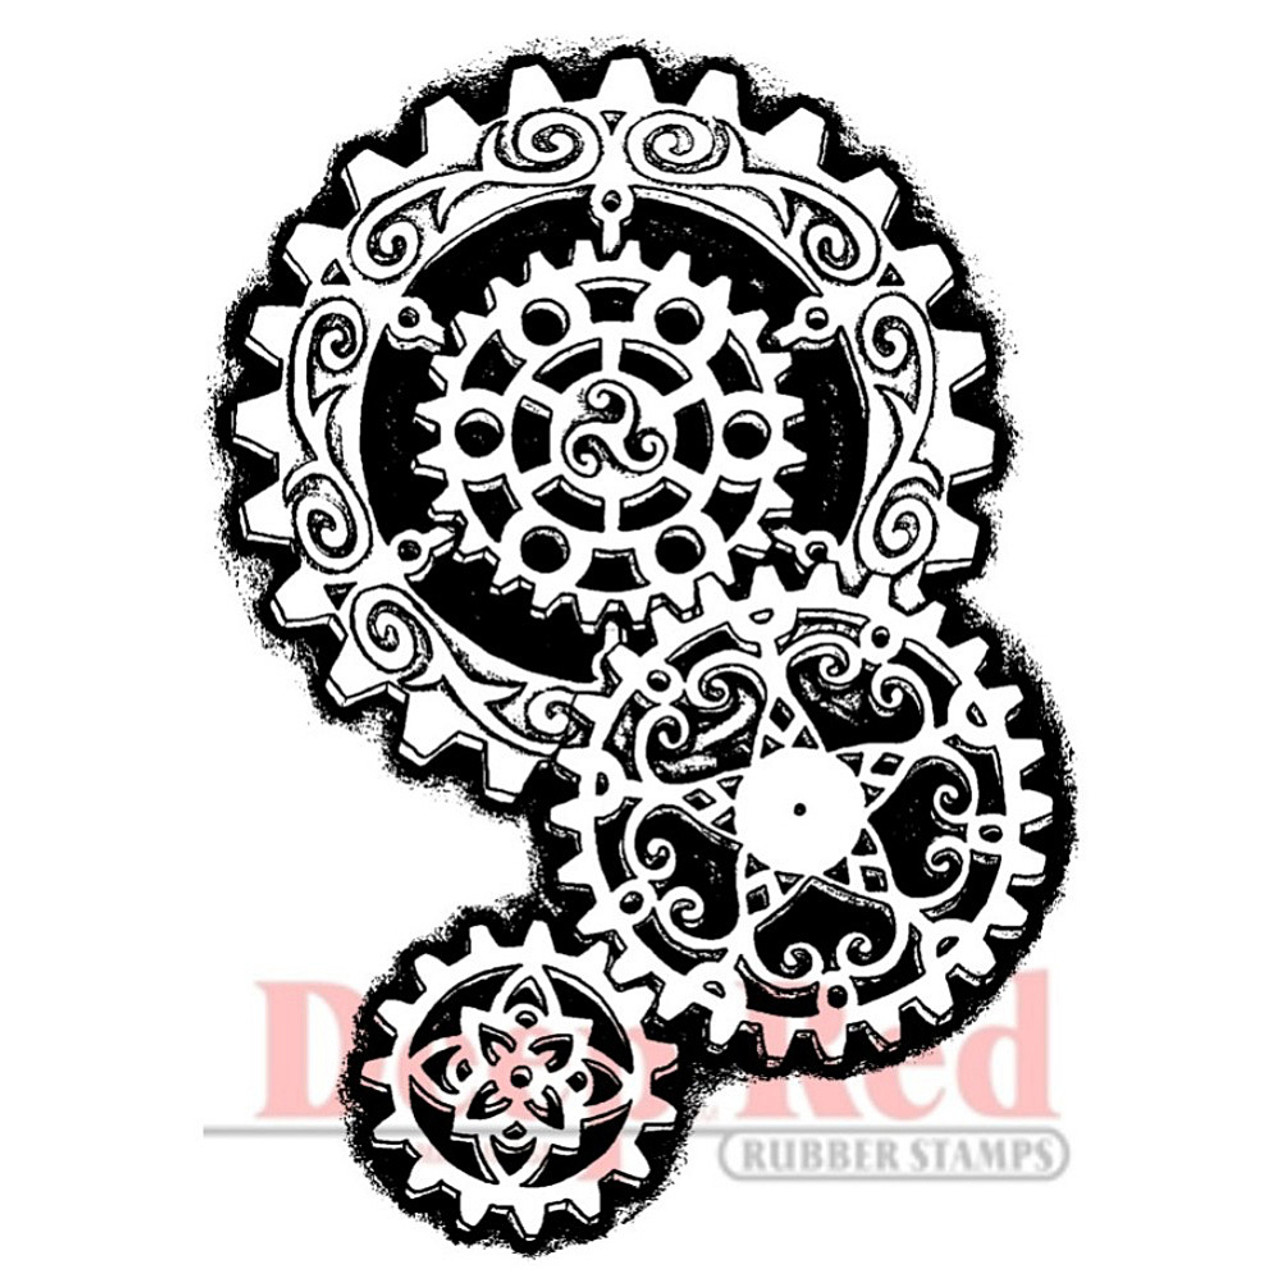 Deep Red Stamps Steampunk Warrior Rubber Cling Stamp